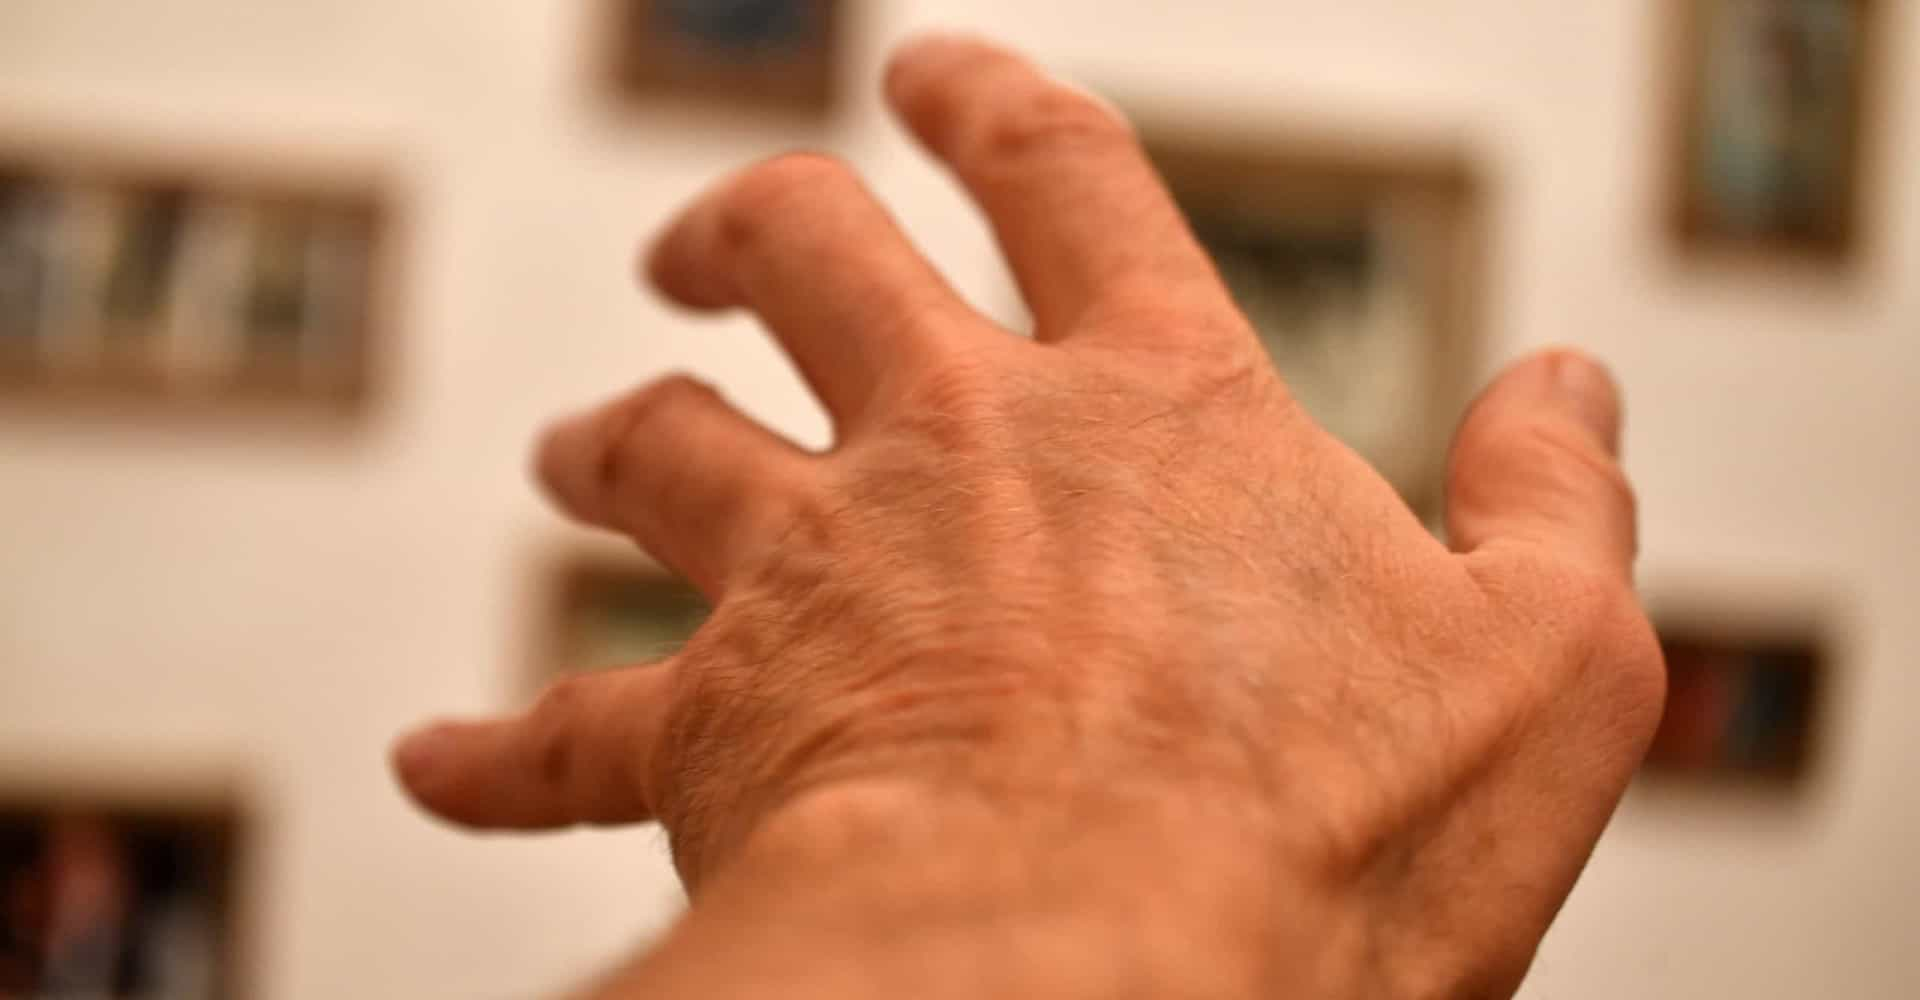 Understand the causes, symptoms, and treatments of Parkinson's disease